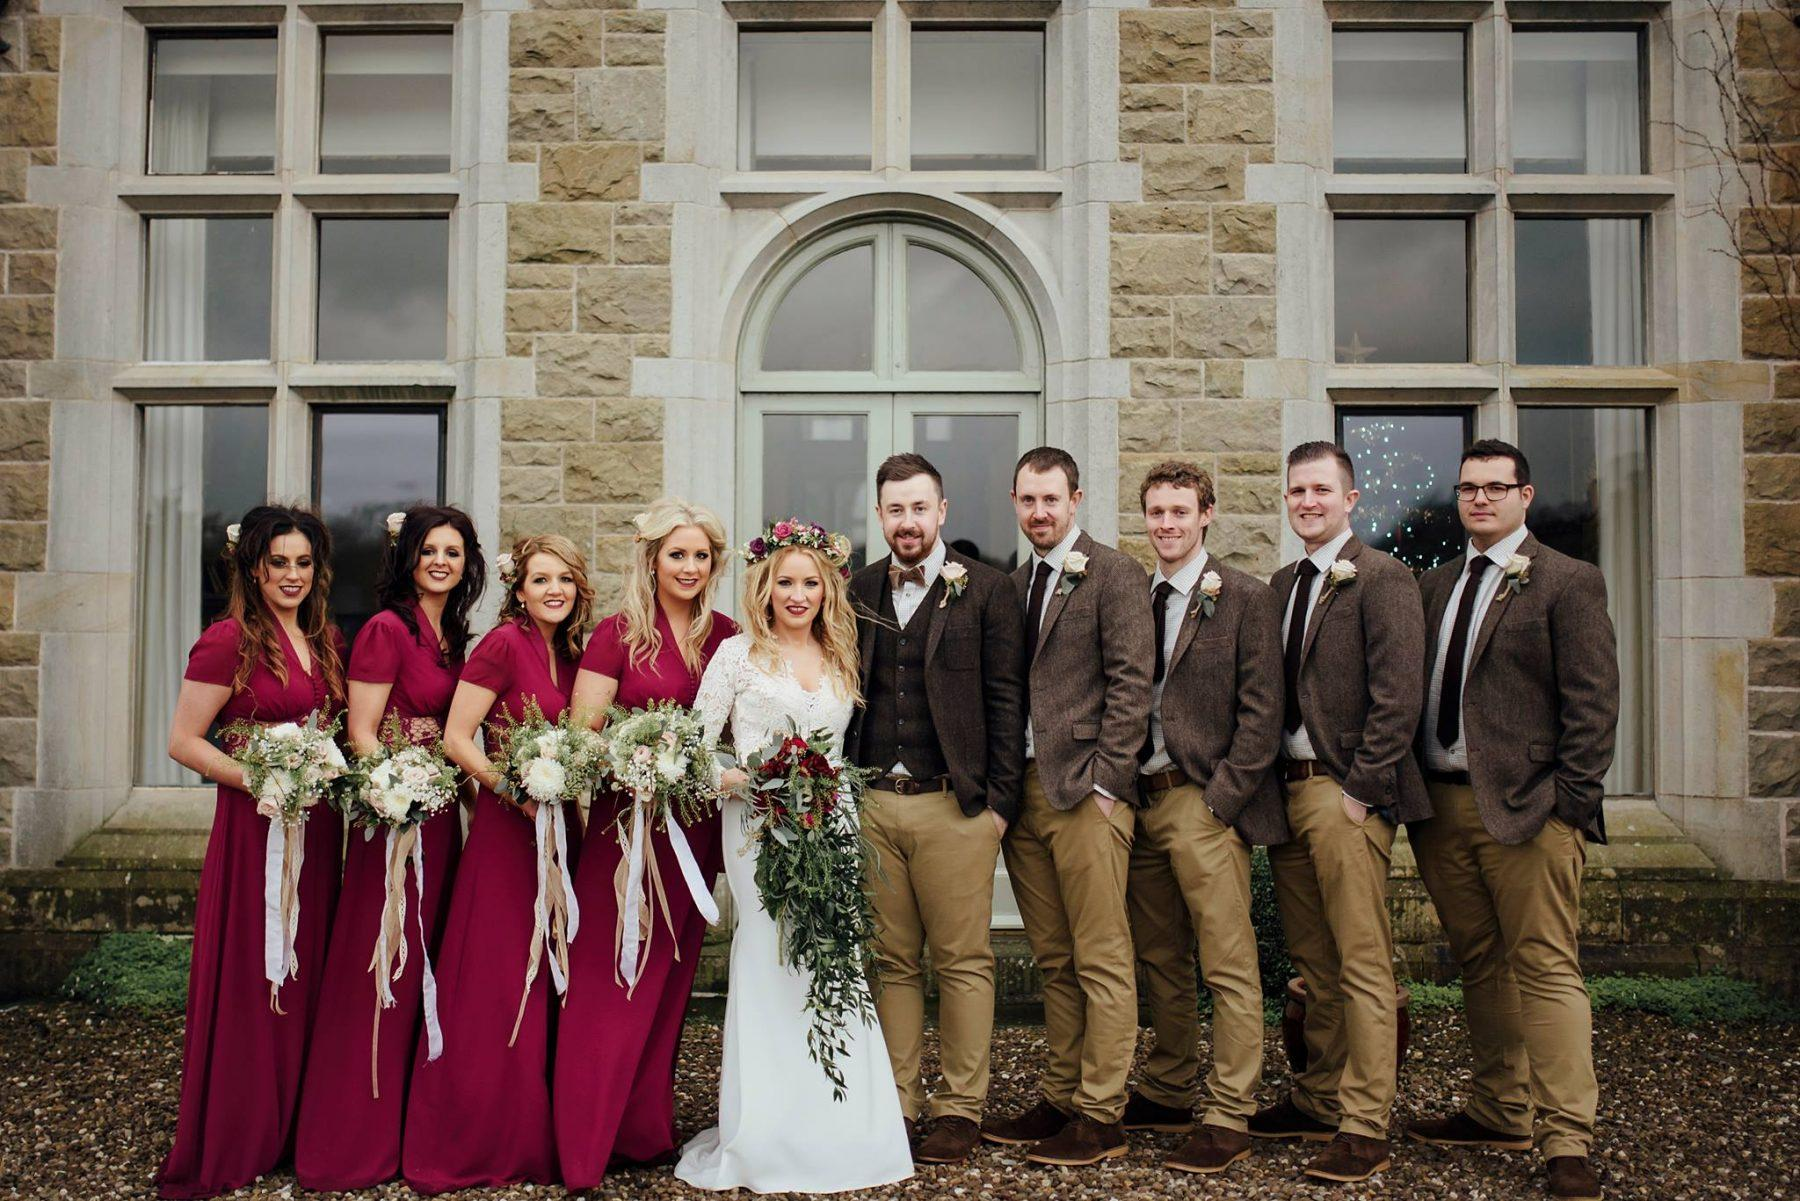 Photography Wedding Blessingbourne Northern Ireland Autumn Outdoors Estate Country Rustic Fairy Tale Bride Groom Bridal Party Style Manor House